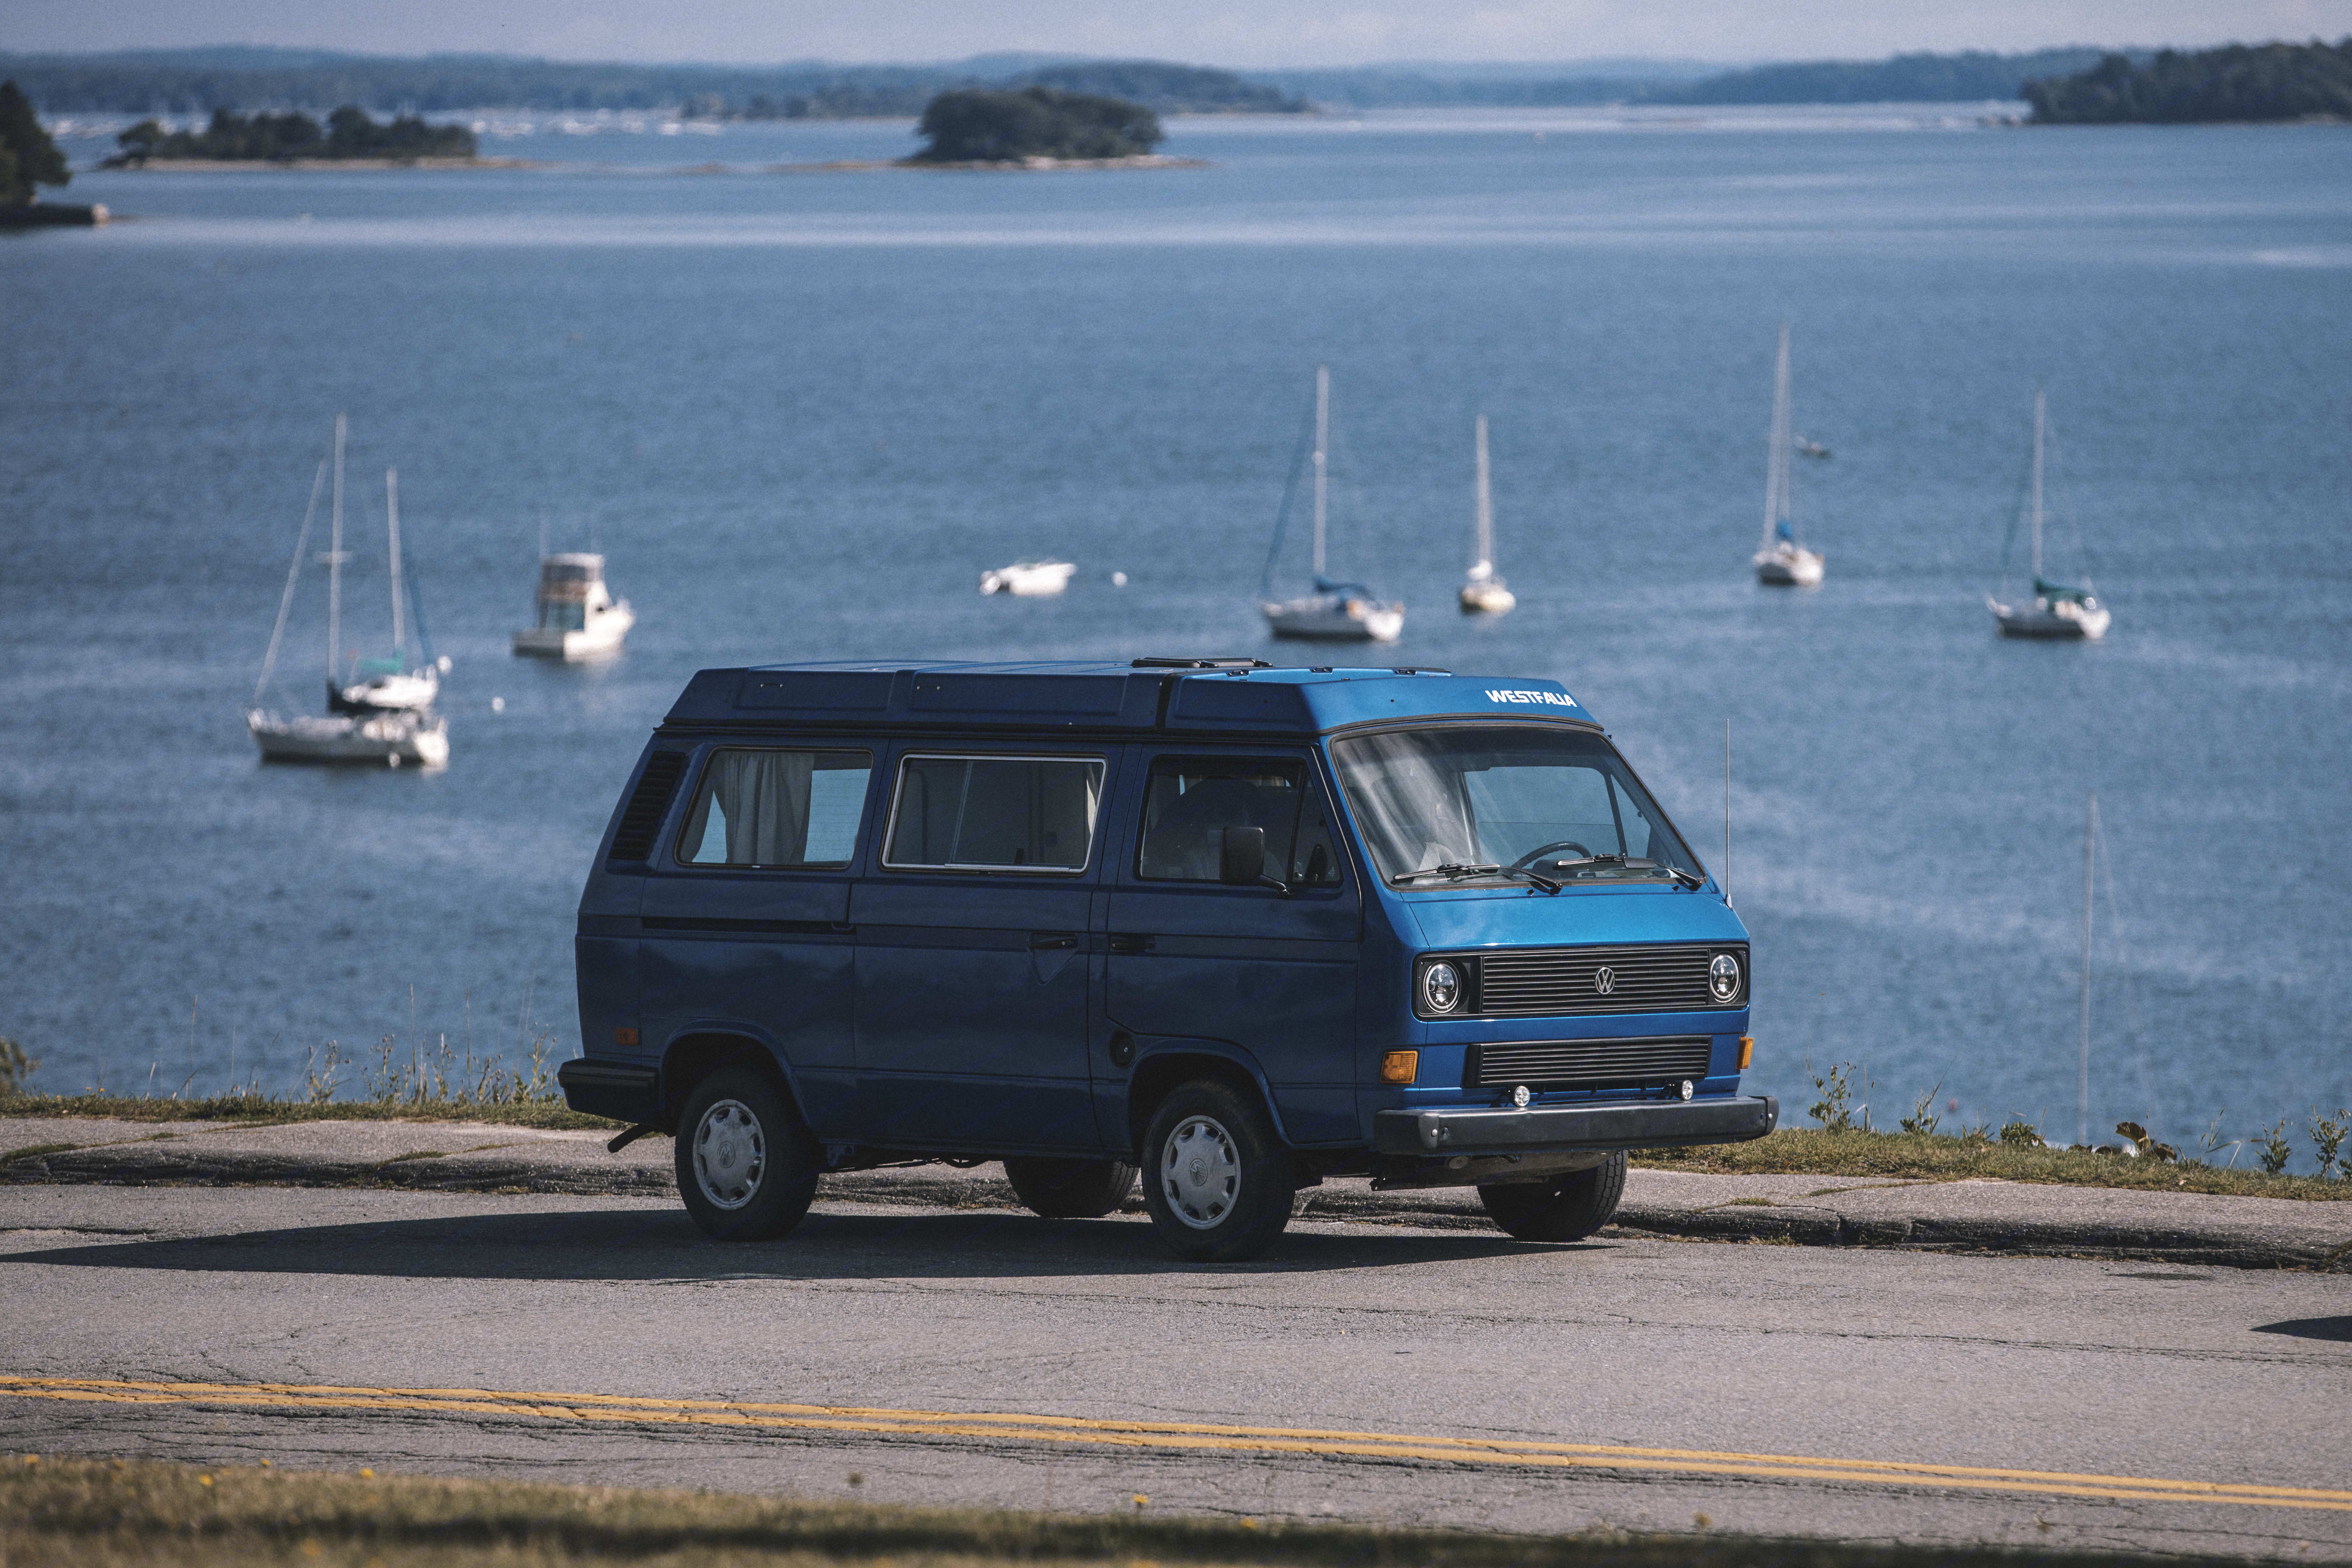 It's a old classic good looking camper van, but also eco-friendly choice. Each km ride on this van will be compensate by planting, brand new trees. At the end of the summer, money will be send to CO2 COMPENSATION QUEBEC, to covert the CO2 debt generate by this badass CamperVan.. Volkswagen T3 Westfalia 1984